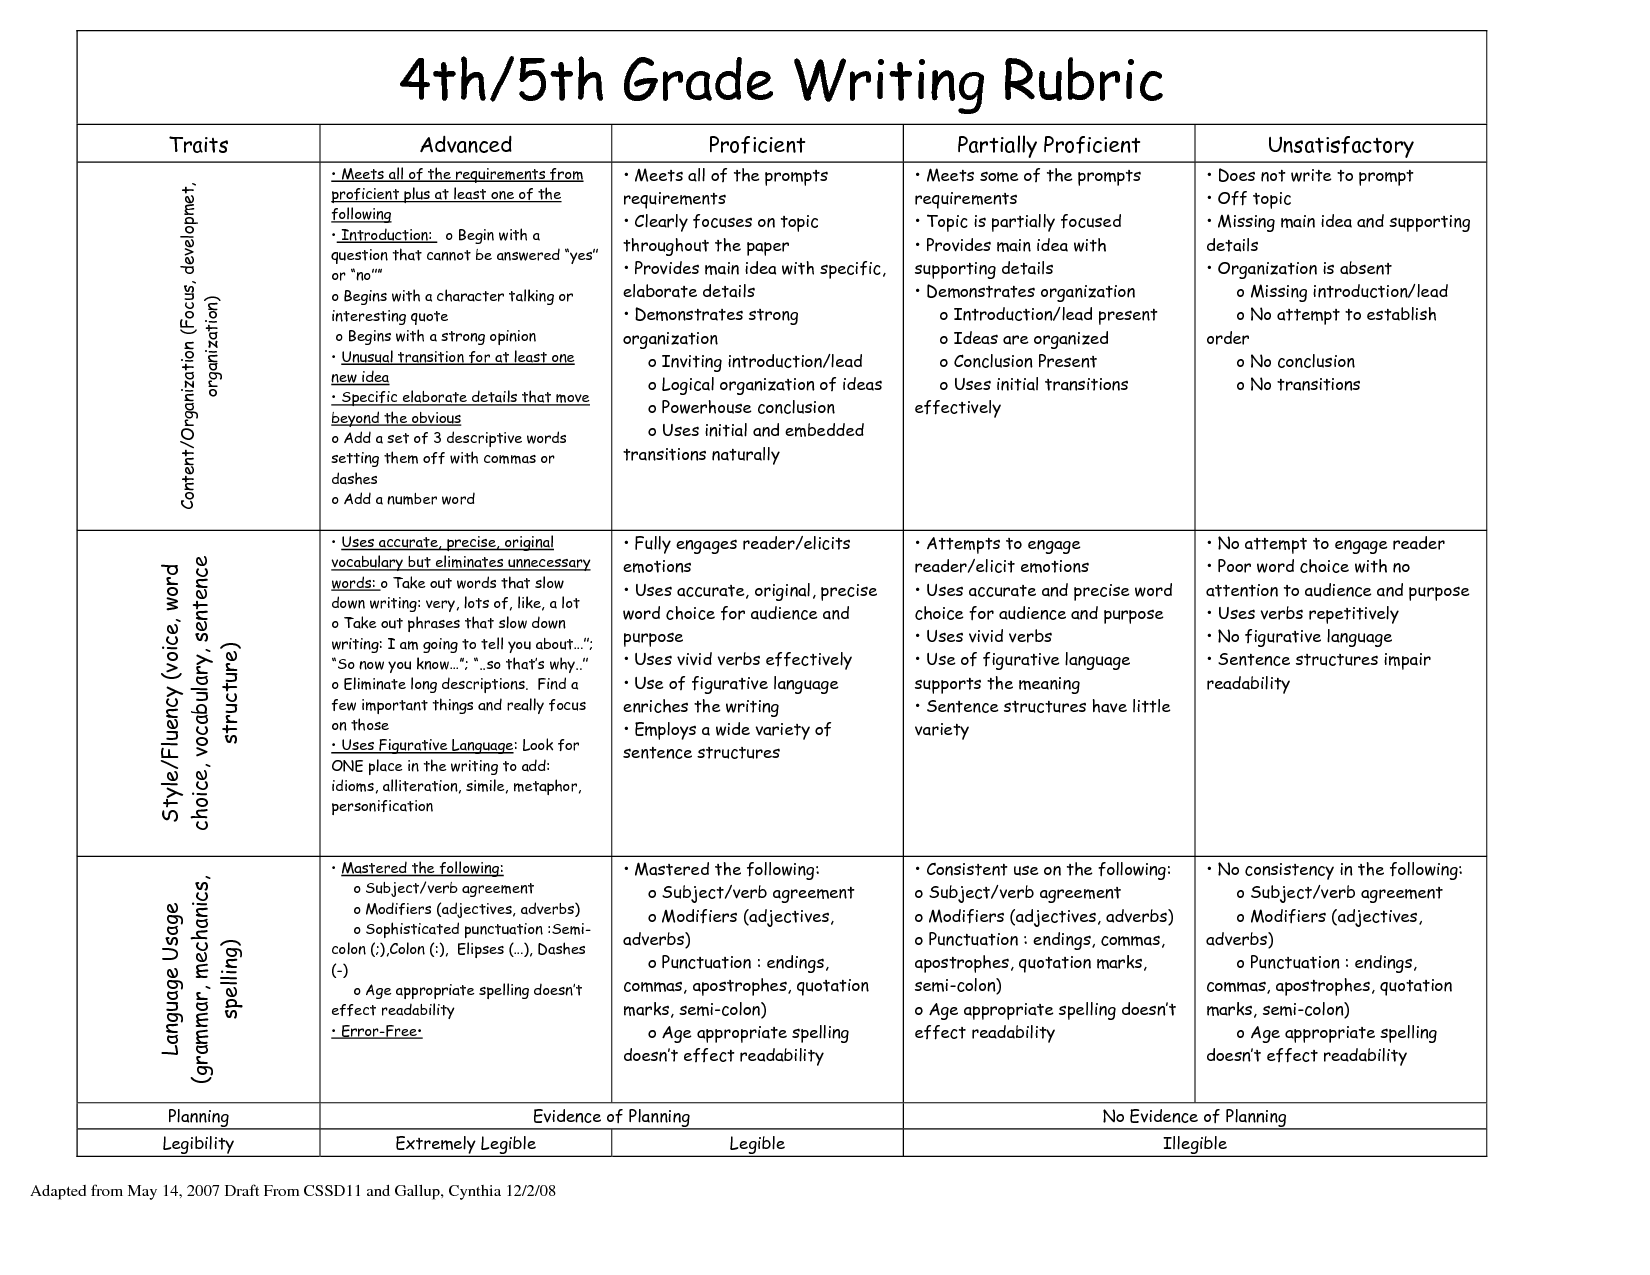 Creative Writing Rubric 4th Grade Rubric For A Narrative Writing Piece Features 6 5 4 3 2 1